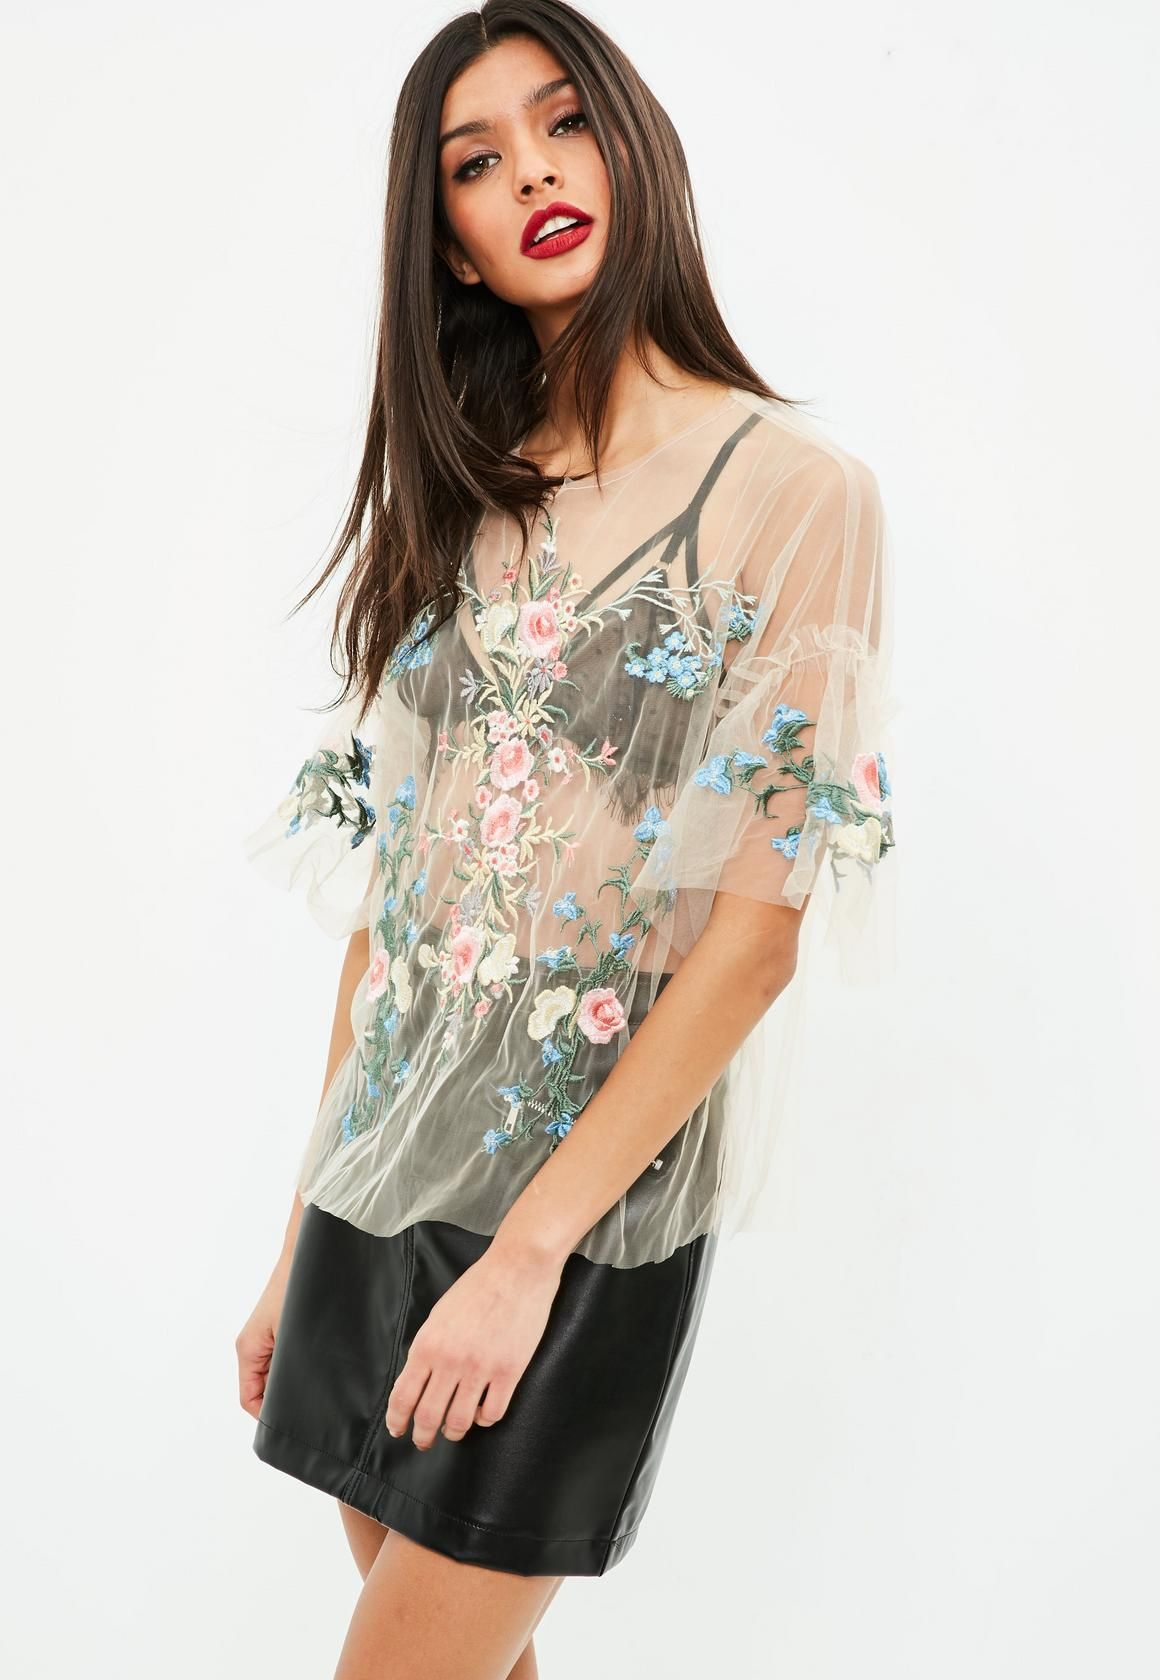 bd99df814f37a Missguided - Nude Sheer Embroidered Top | See through | Tops ...